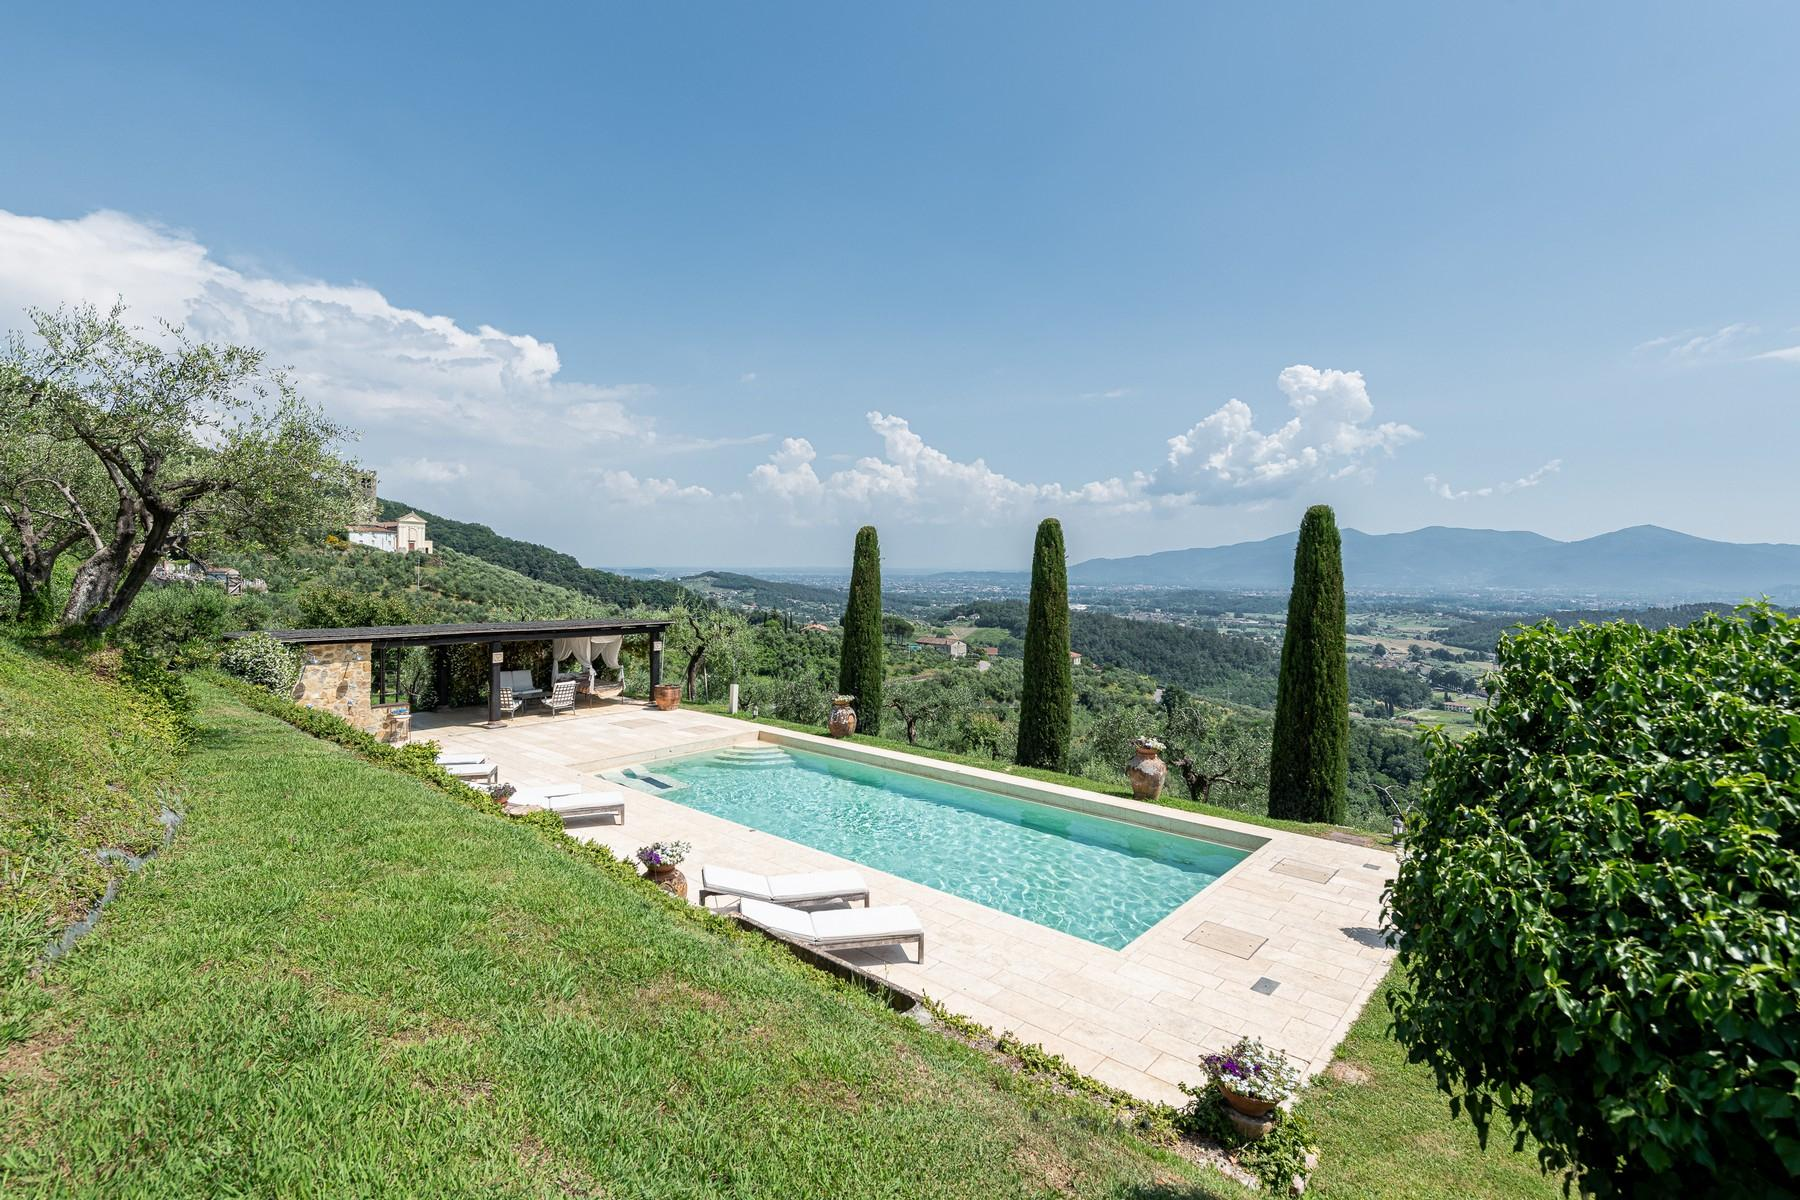 Magical farmhouse with stunning views on the hills of Lucca - 4